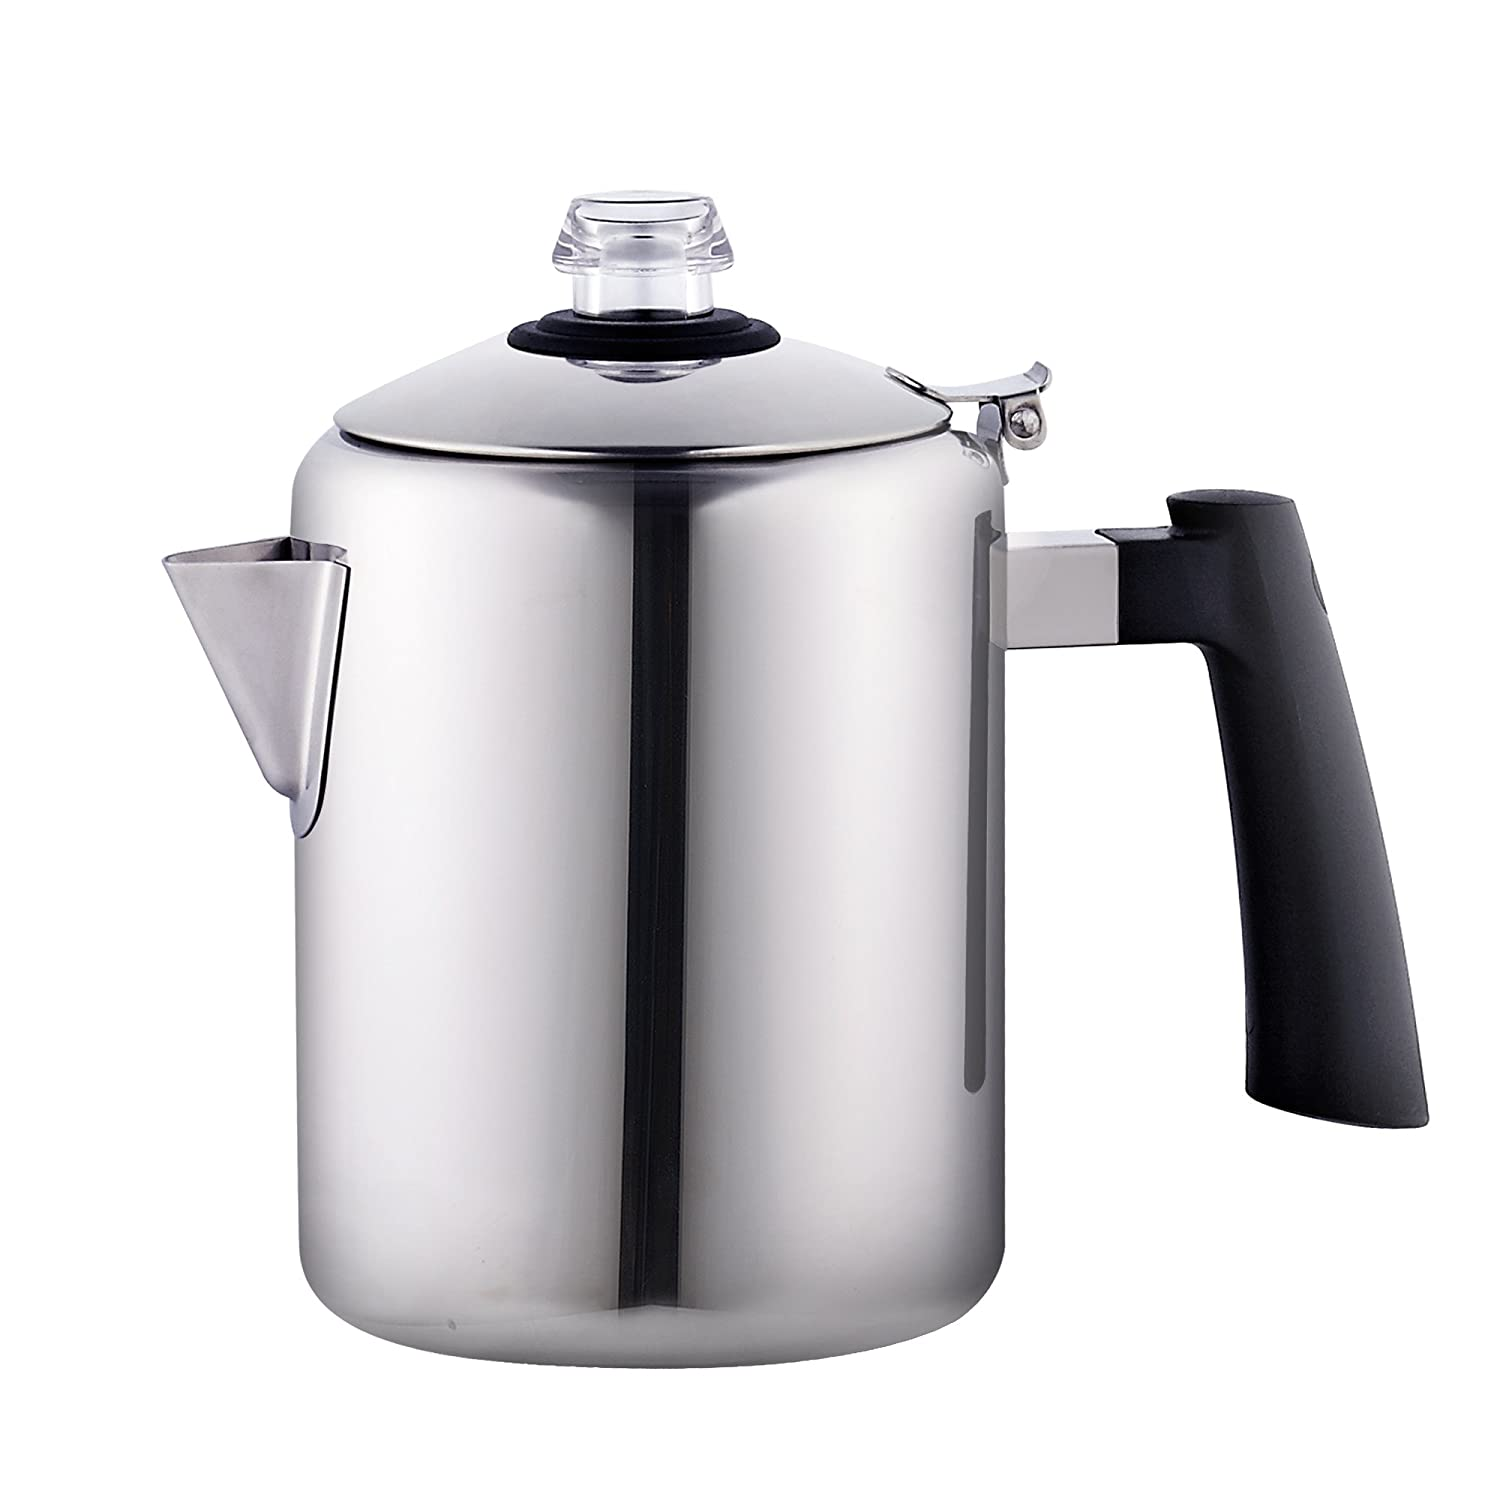 affordable stove top coffee maker percolator on the market